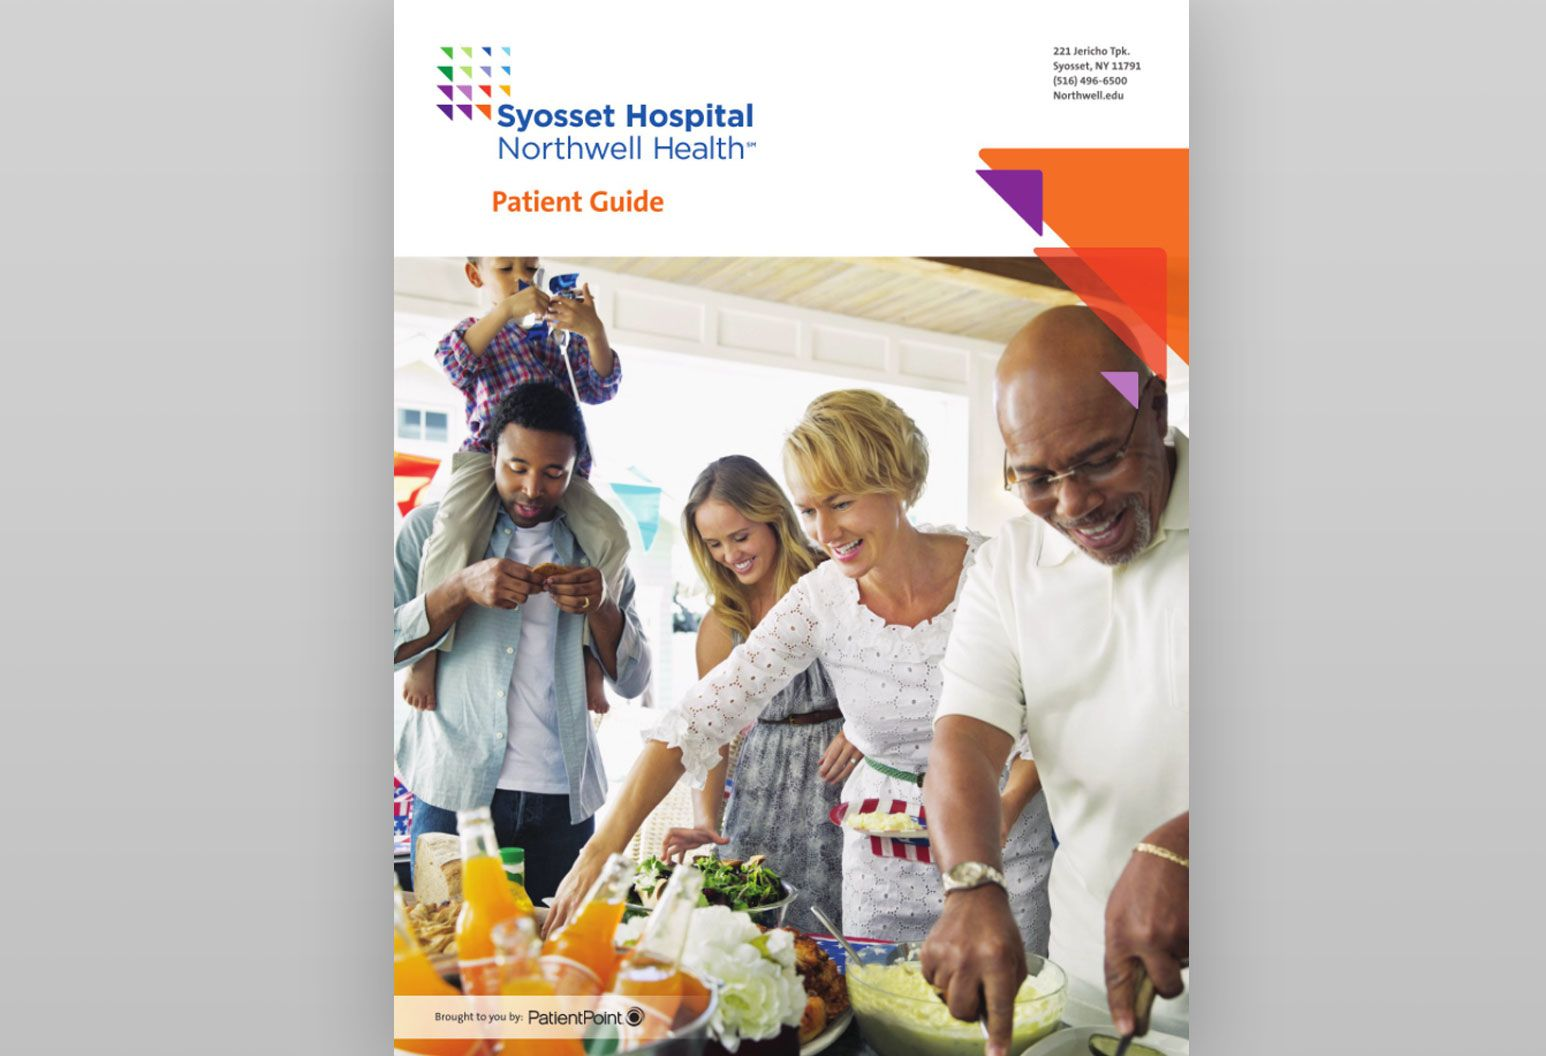 On the cover of a patient guide booklet for Syosset Hospital, there is a group of people at a party getting food and smiling.